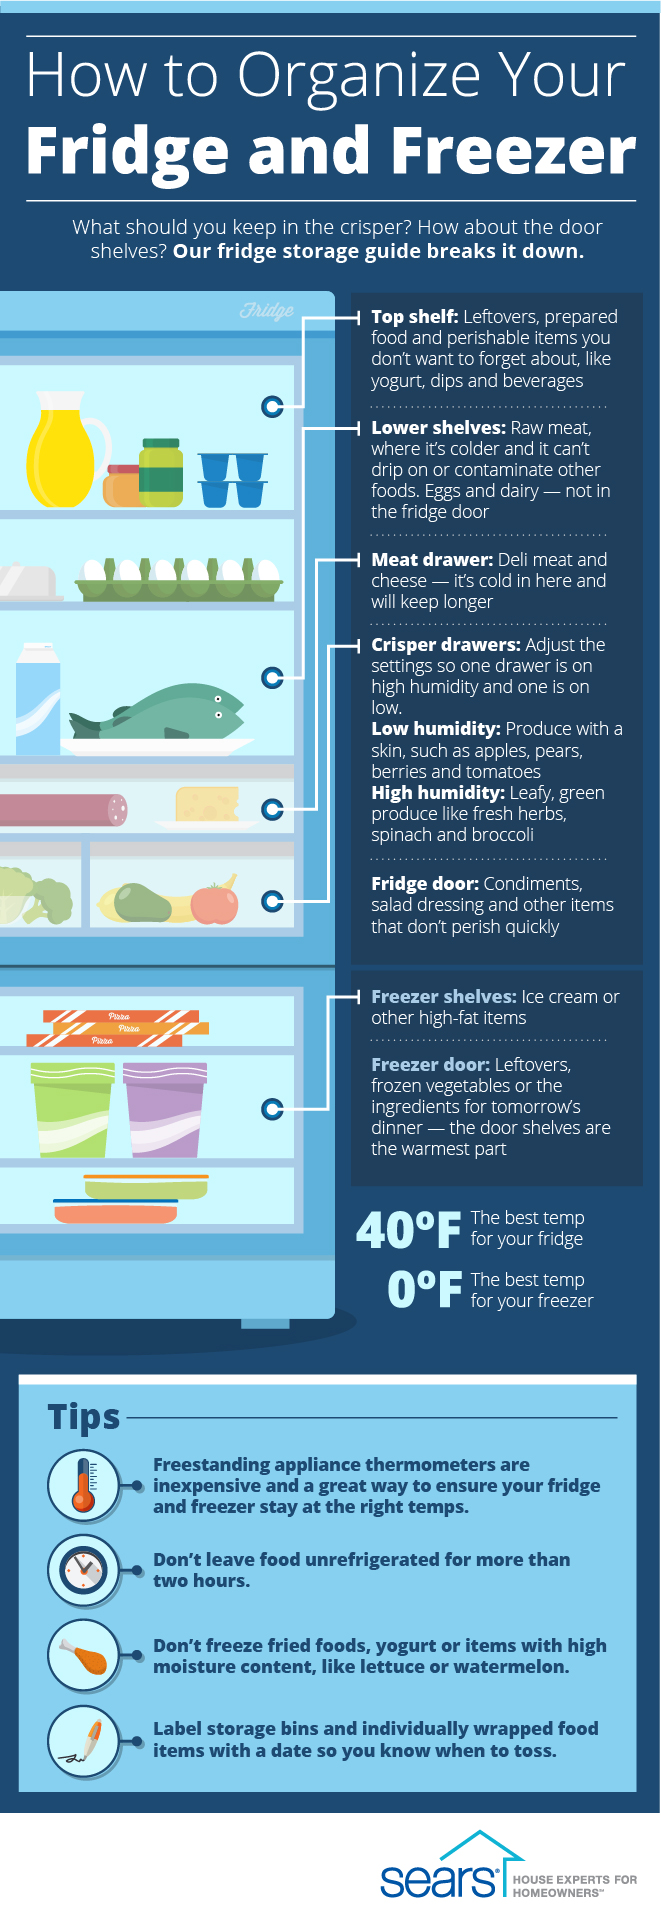 How to Organize Your Fridge and Freezer